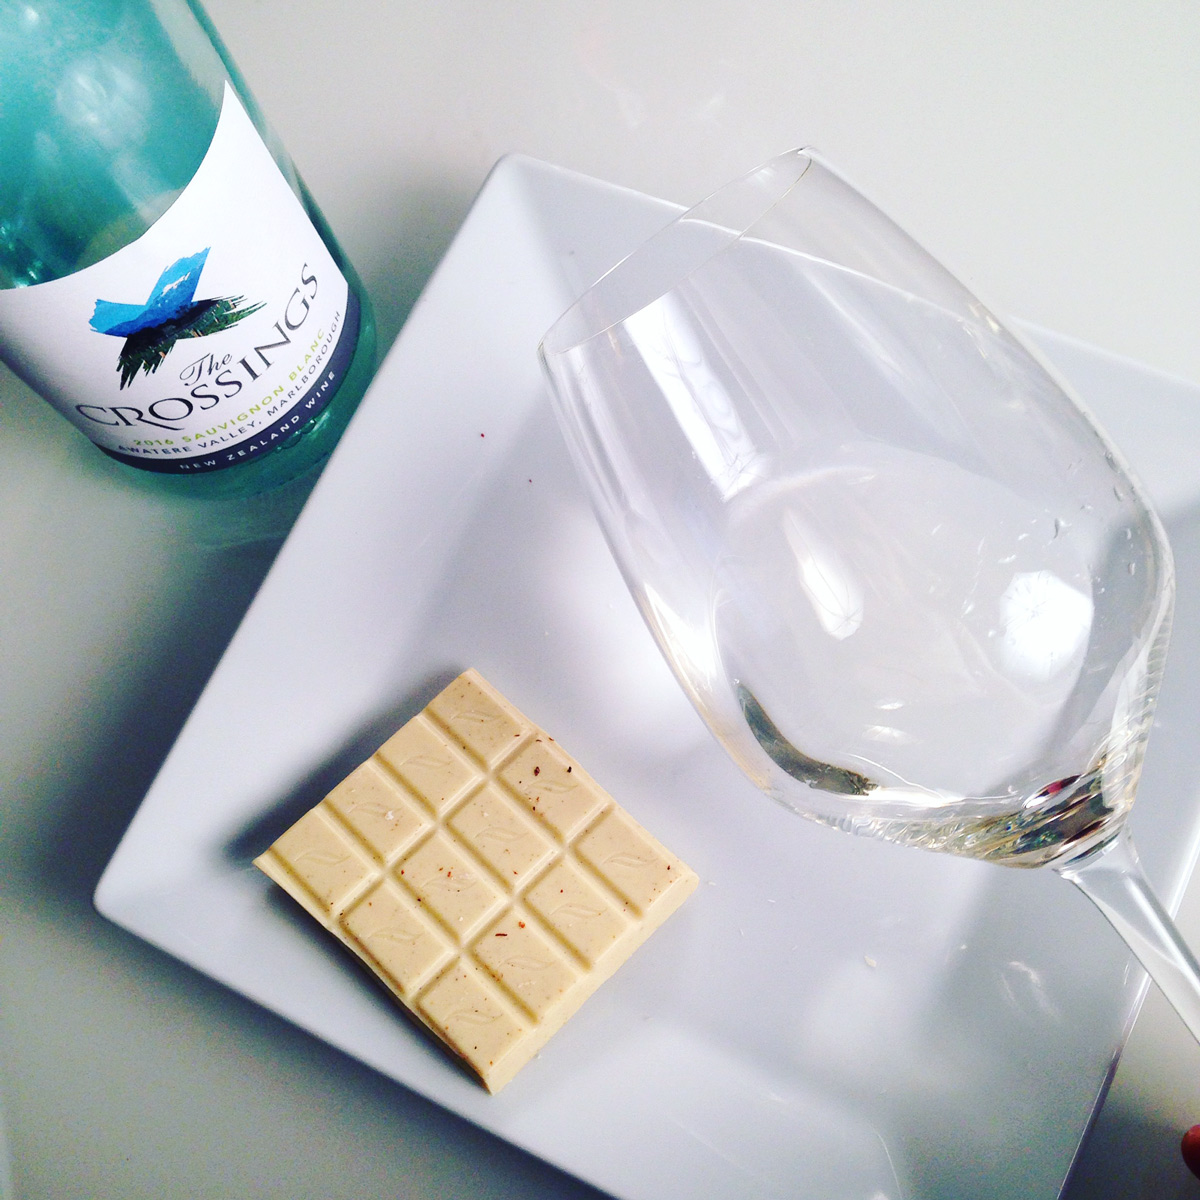 White Chocolate and New Zealand Sauvignon Blanc Pairing